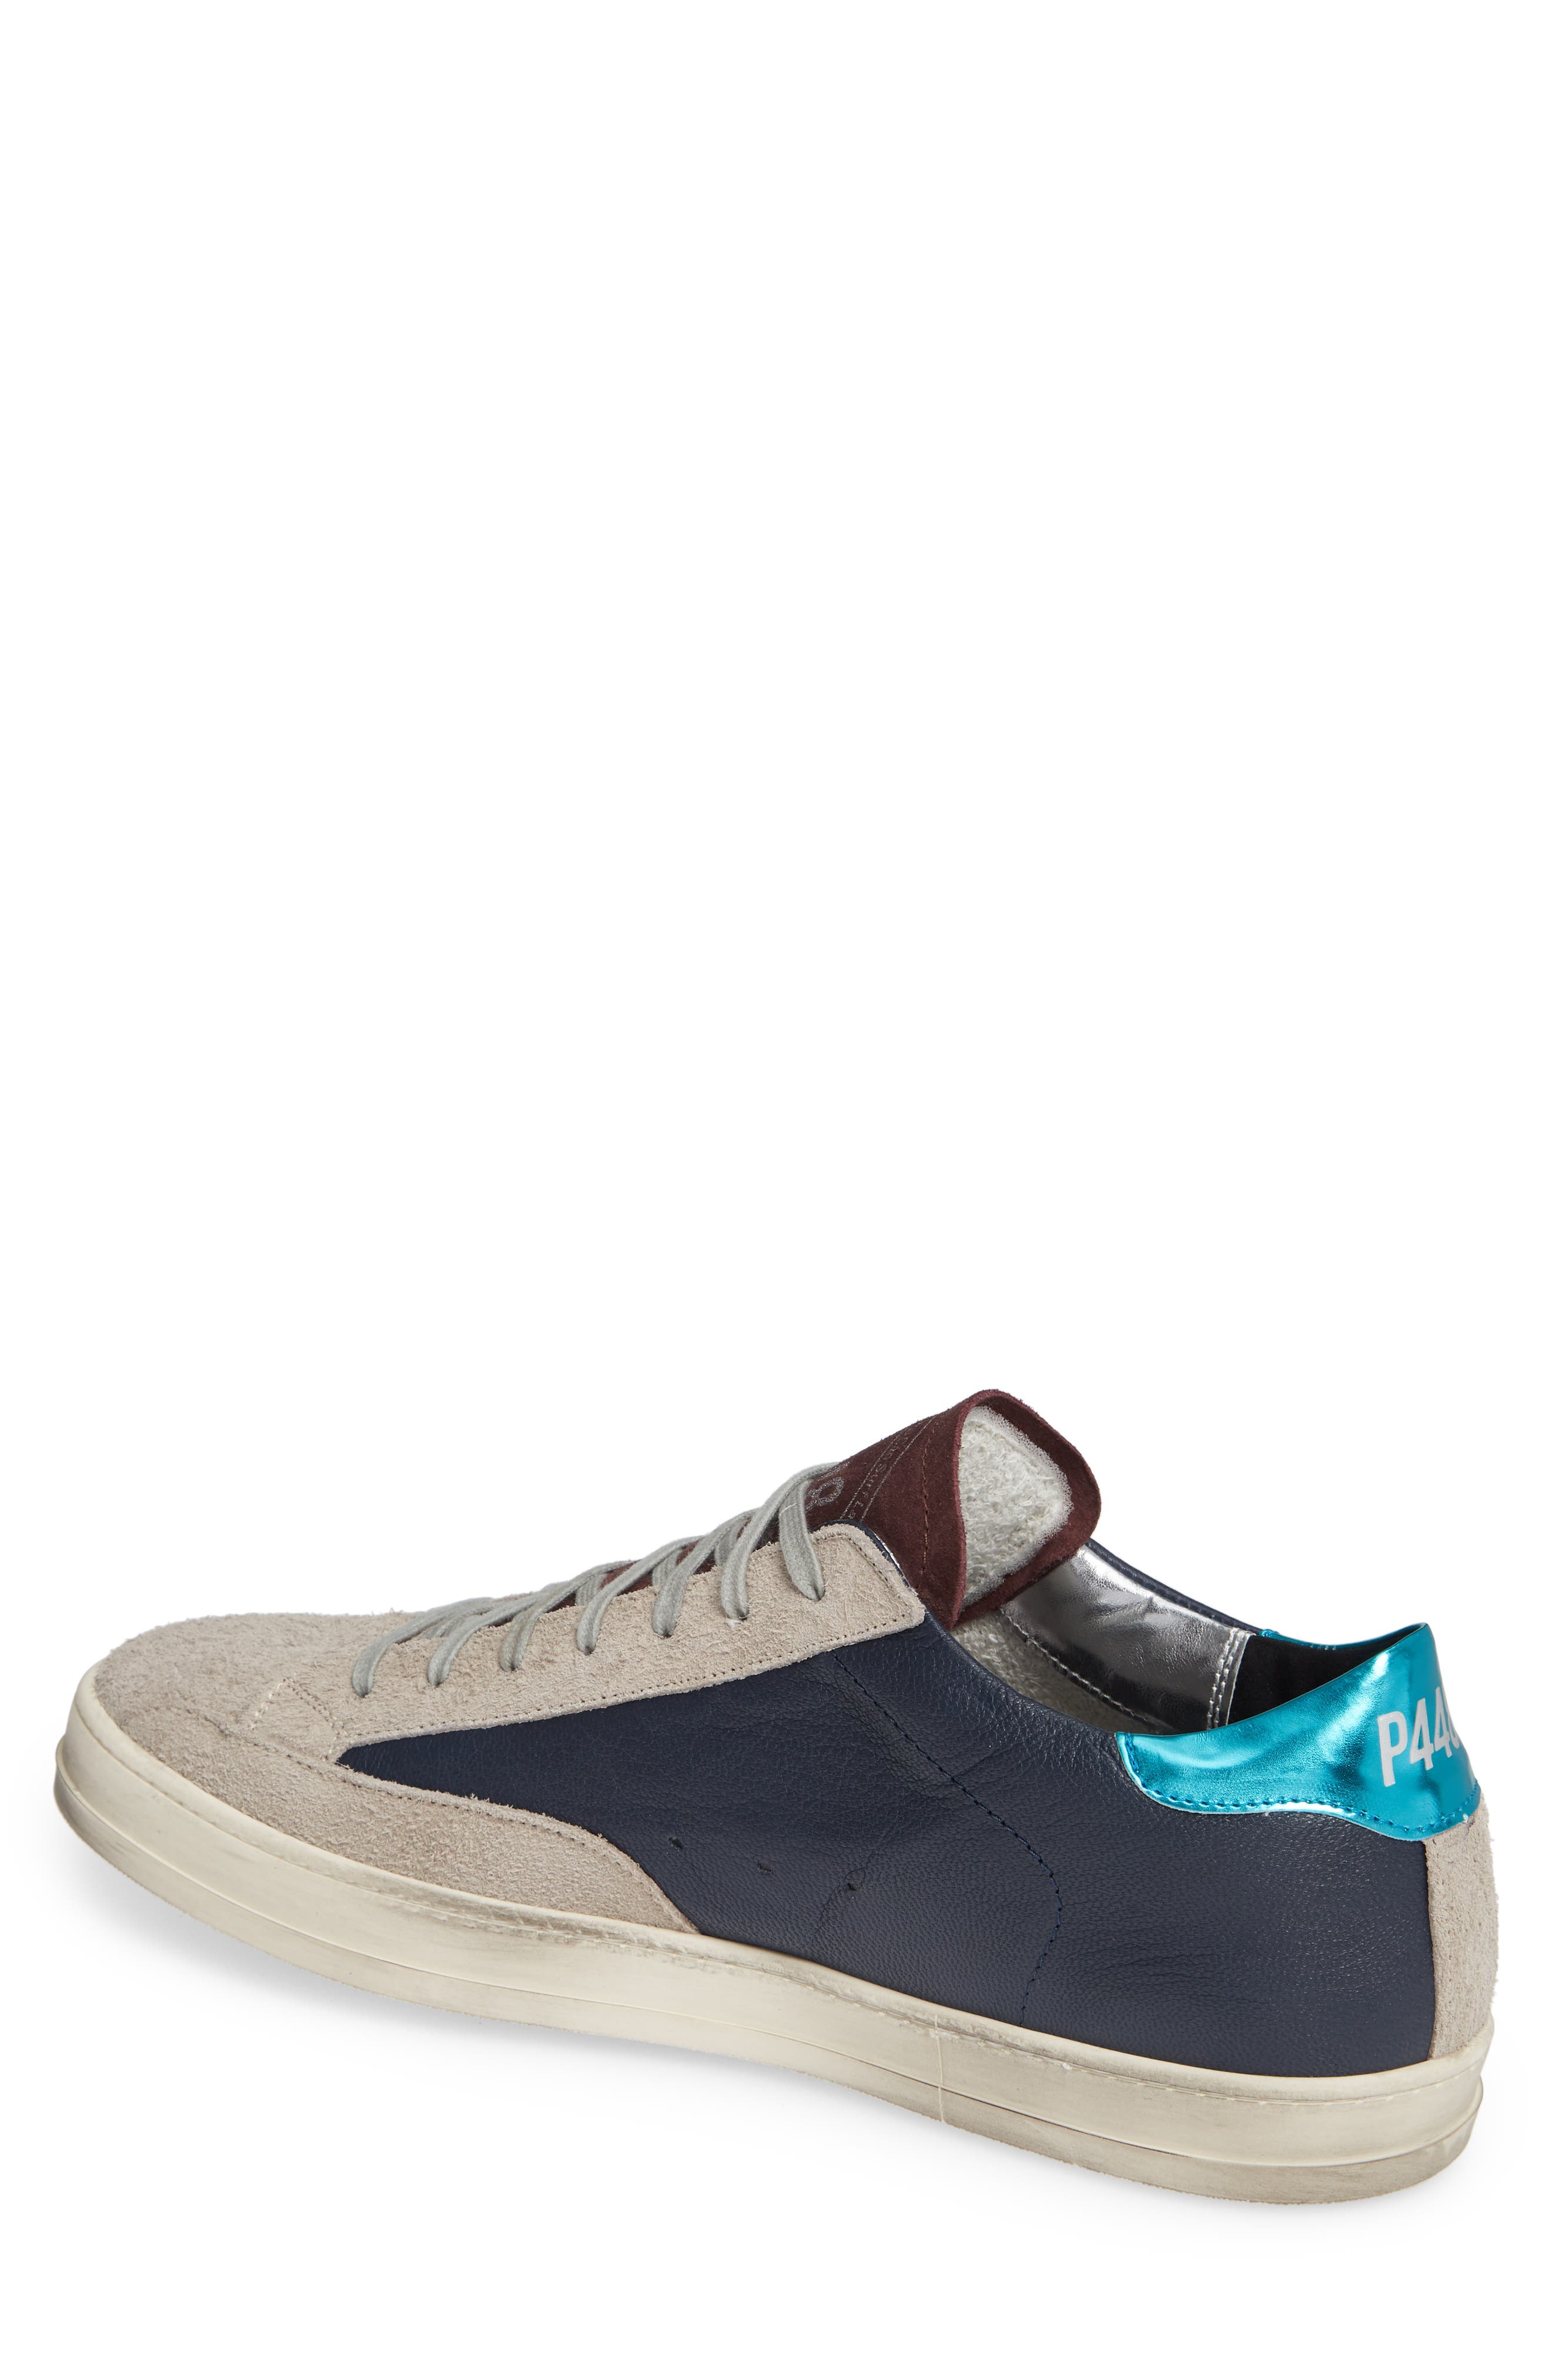 A8 John Sneaker,                             Alternate thumbnail 2, color,                             NAVY